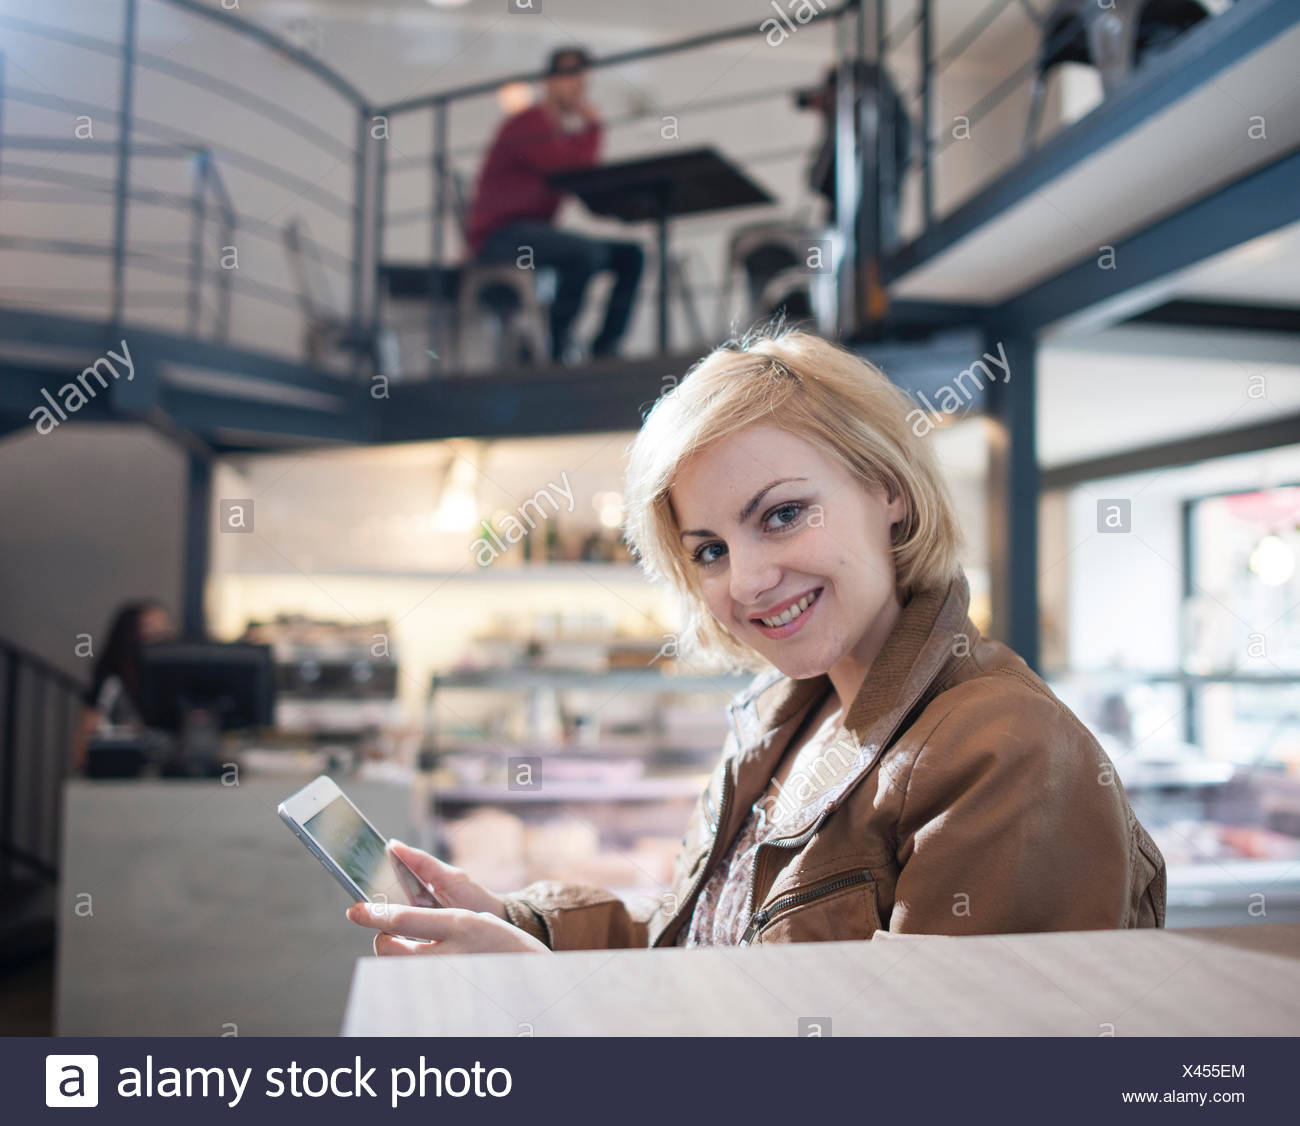 Portrait of smiling young woman using tablet PC in cafe Stock Photo